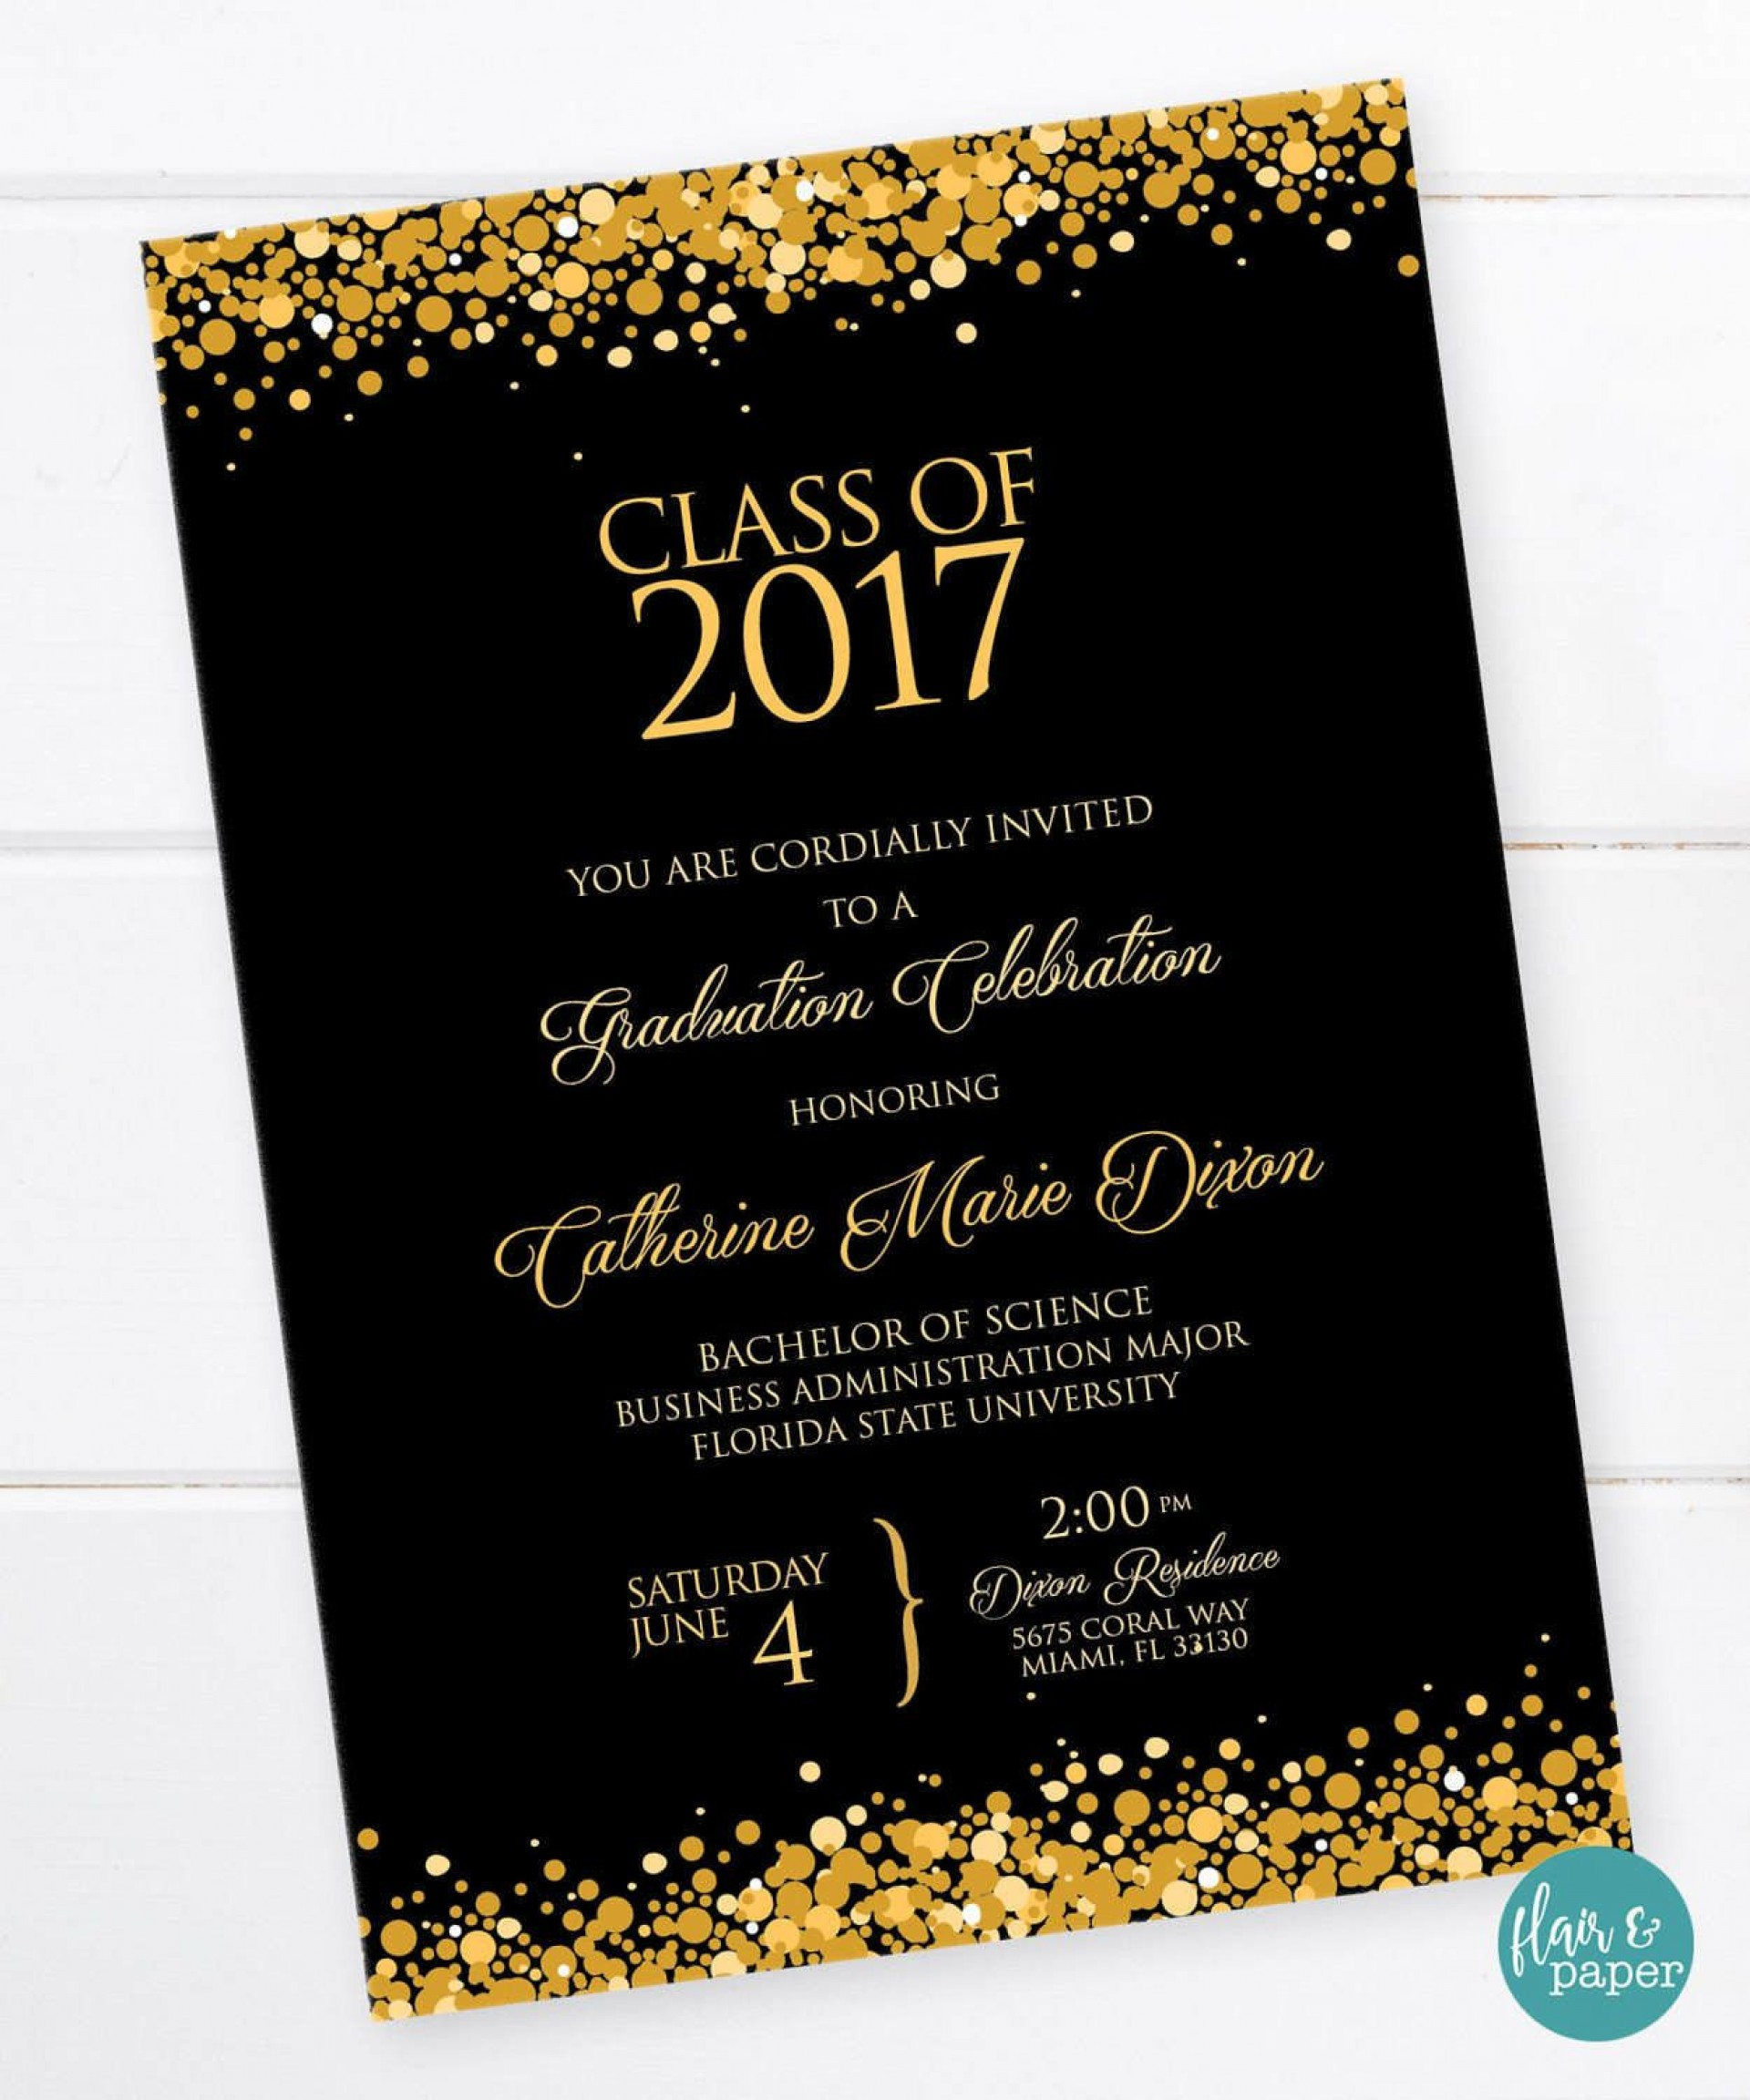 001 Shocking College Graduation Invitation Template Idea  Party Free For Word1920